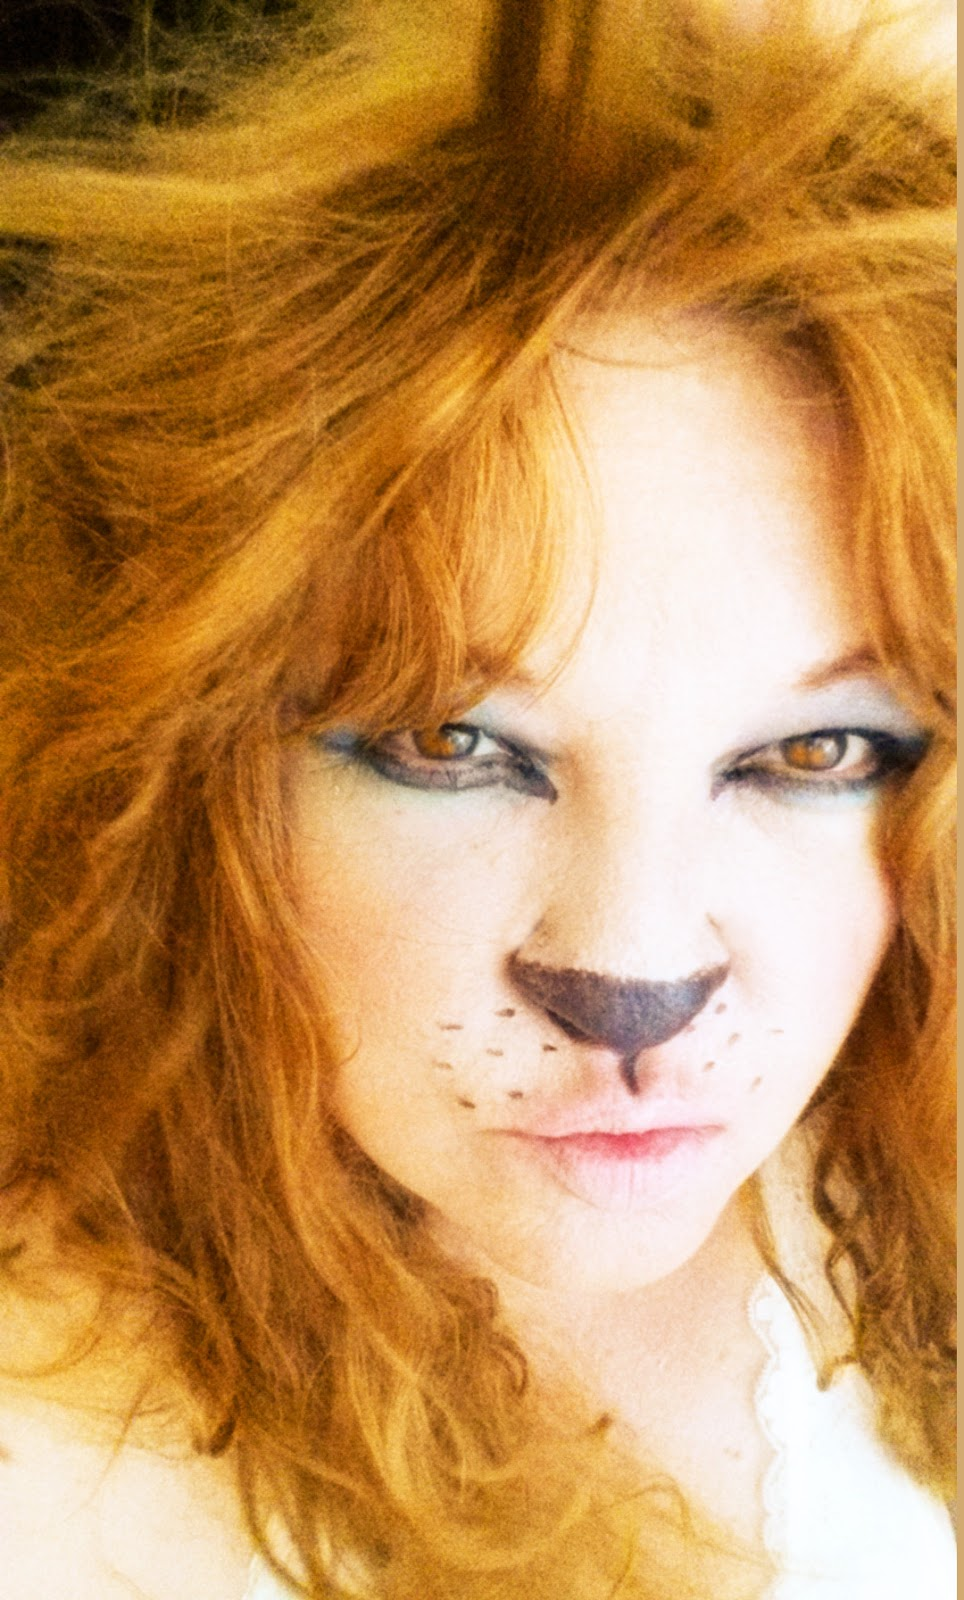 Ghost Hunting Theories Blog Entry Saturday Halloween Selfies Lilian Ashley Body Musk Lion Makeup Was Simple With An Eyeliner Pencil Some Foundation Put It On My Lips Too And Eyeshadow I Hinted At Without Being Cartoonish